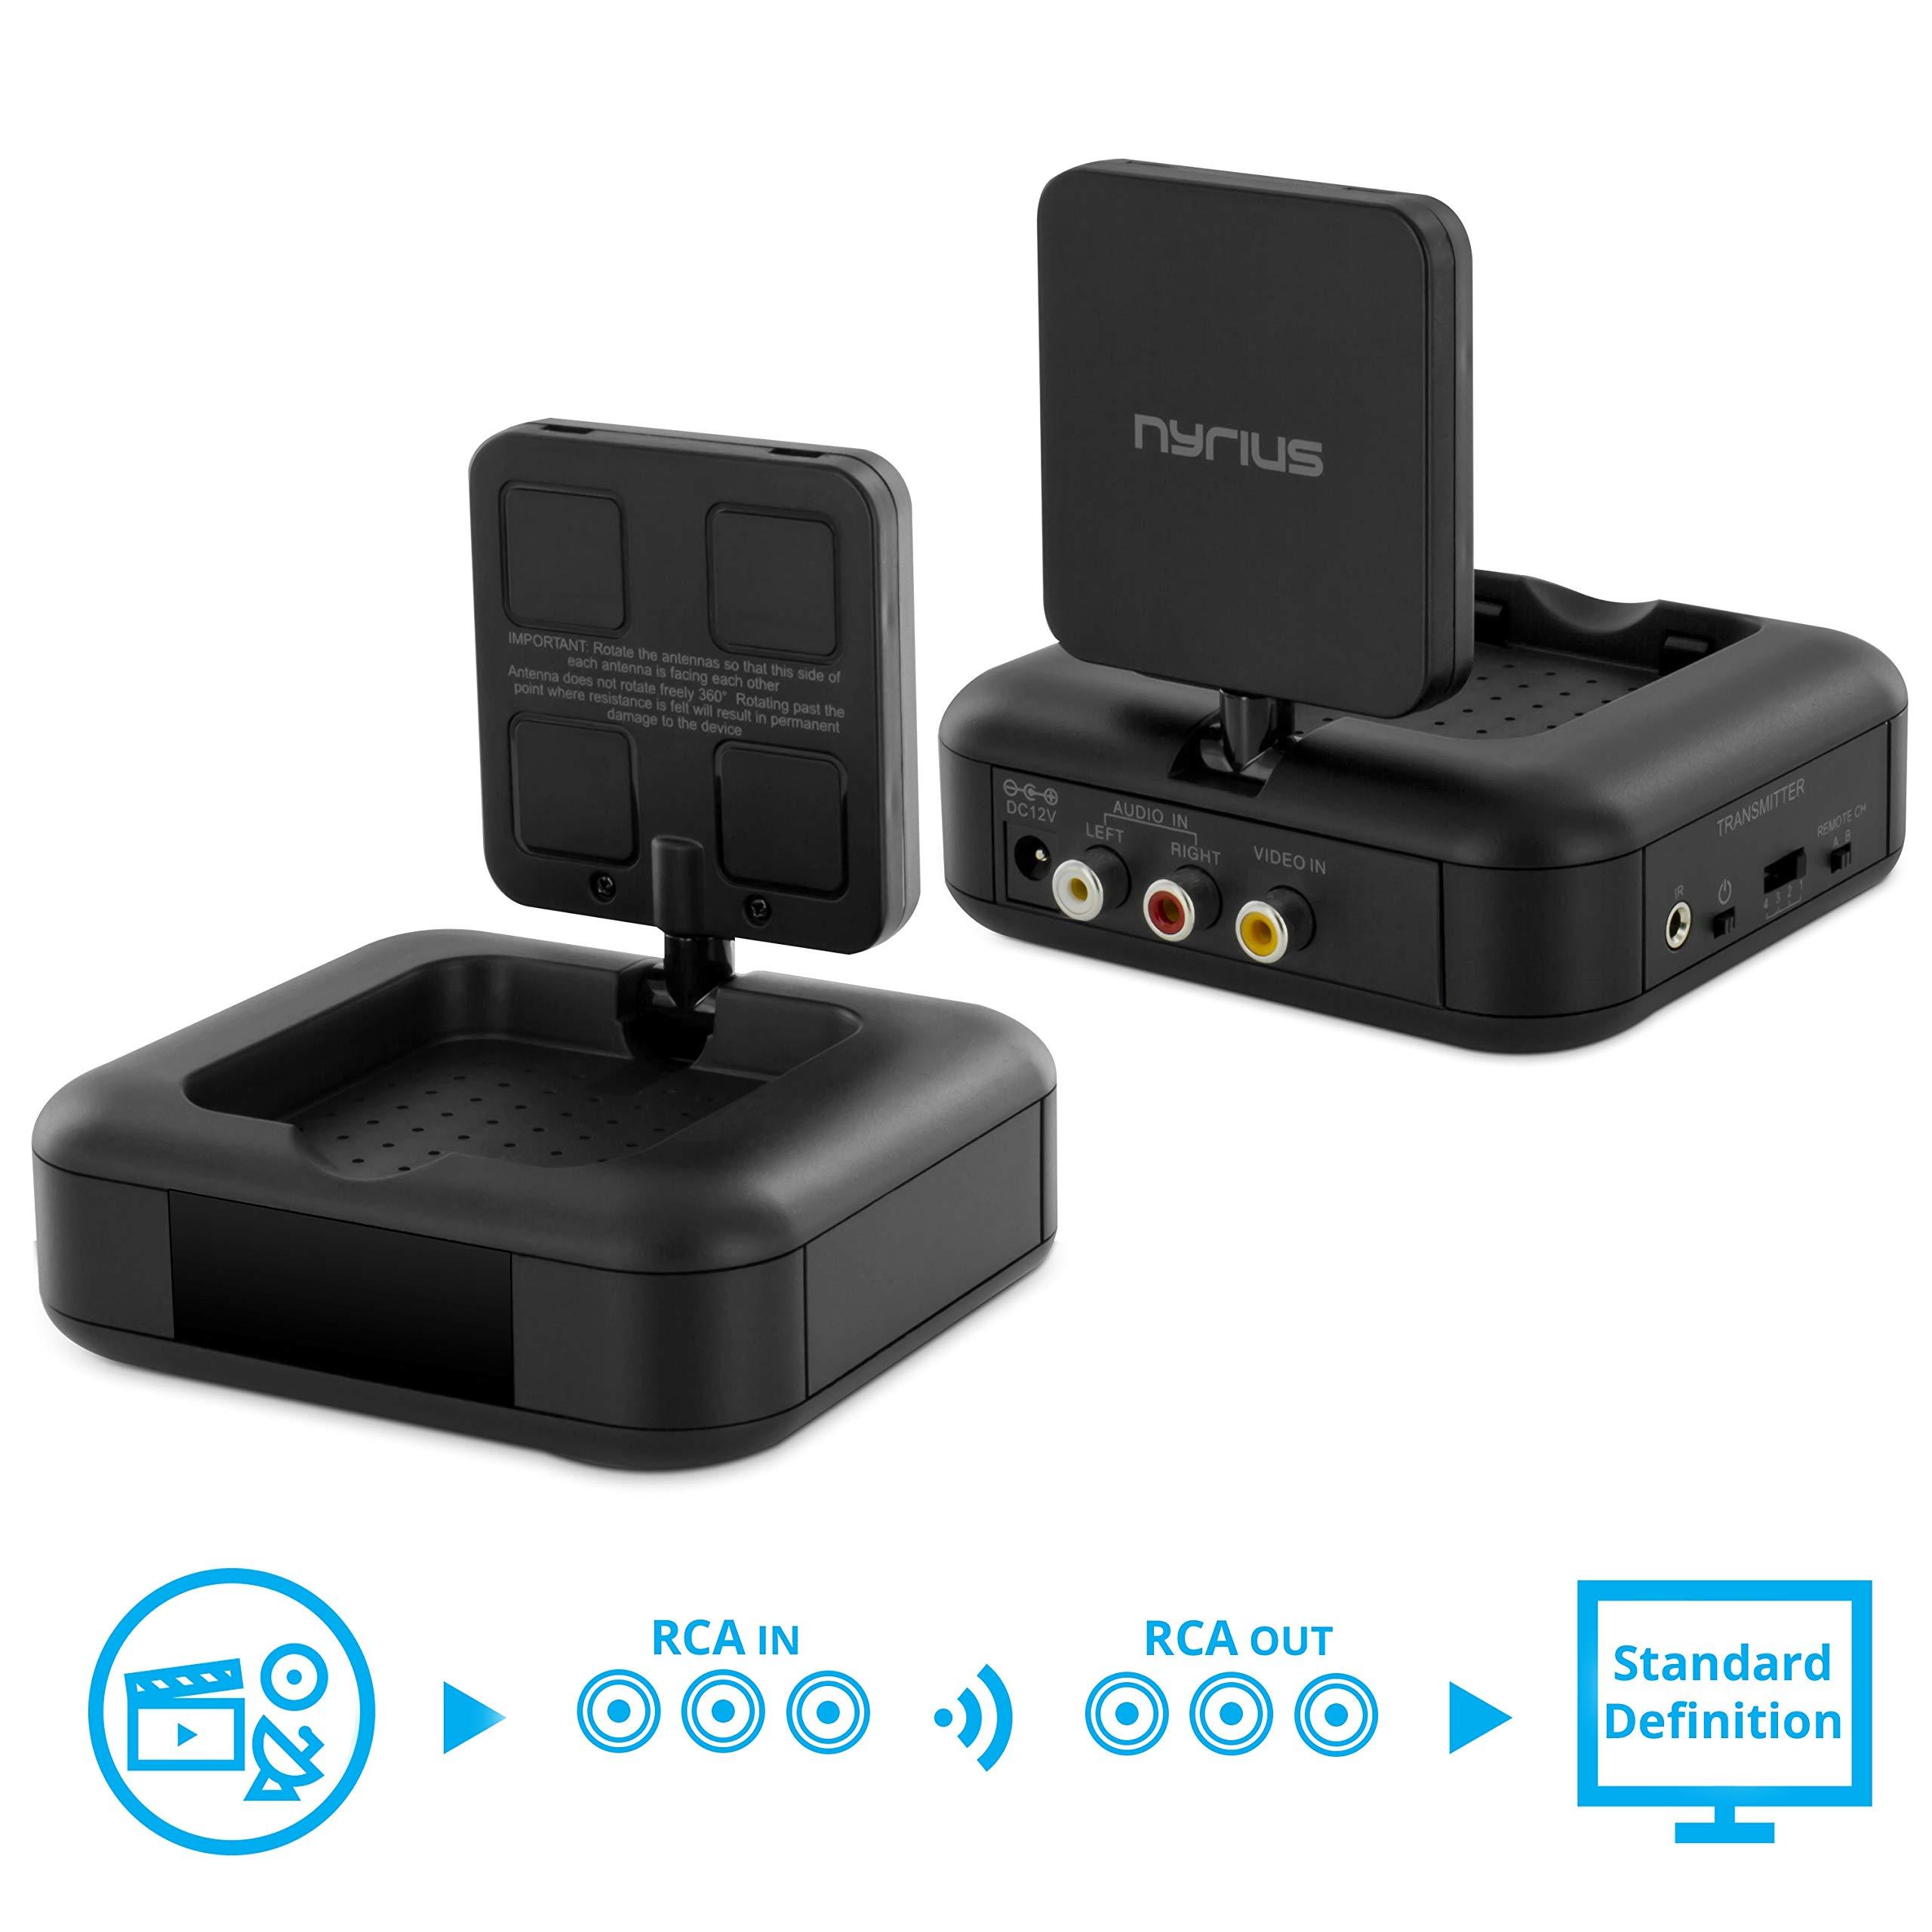 Nyrius 5.8GHz 4 Channel Wireless Video & Audio Sender Transmitter & Receiver with IR Remote Extender for Streaming Cable, Satellite, DVD to TV Wirelessly (NY-GS10) by Nyrius